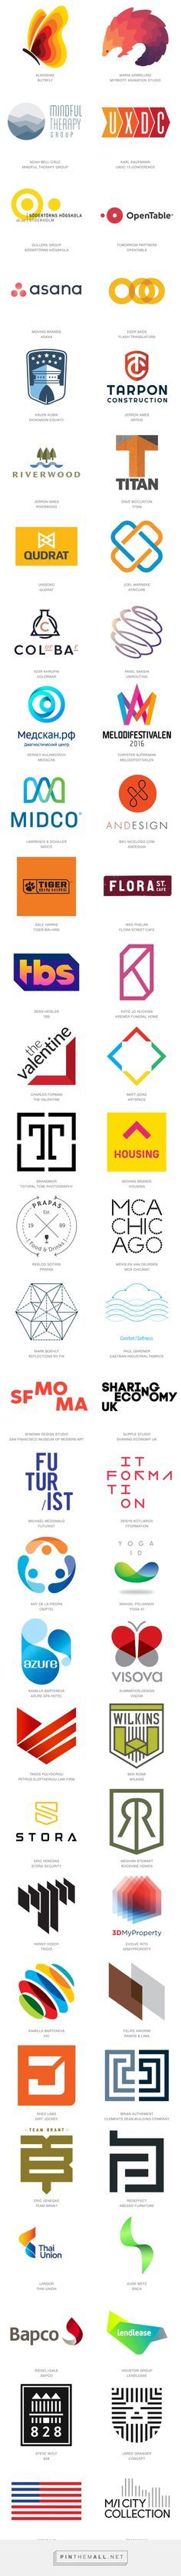 Get an attractive Logo design Within 24 hours .... Knock me on skype: qketing